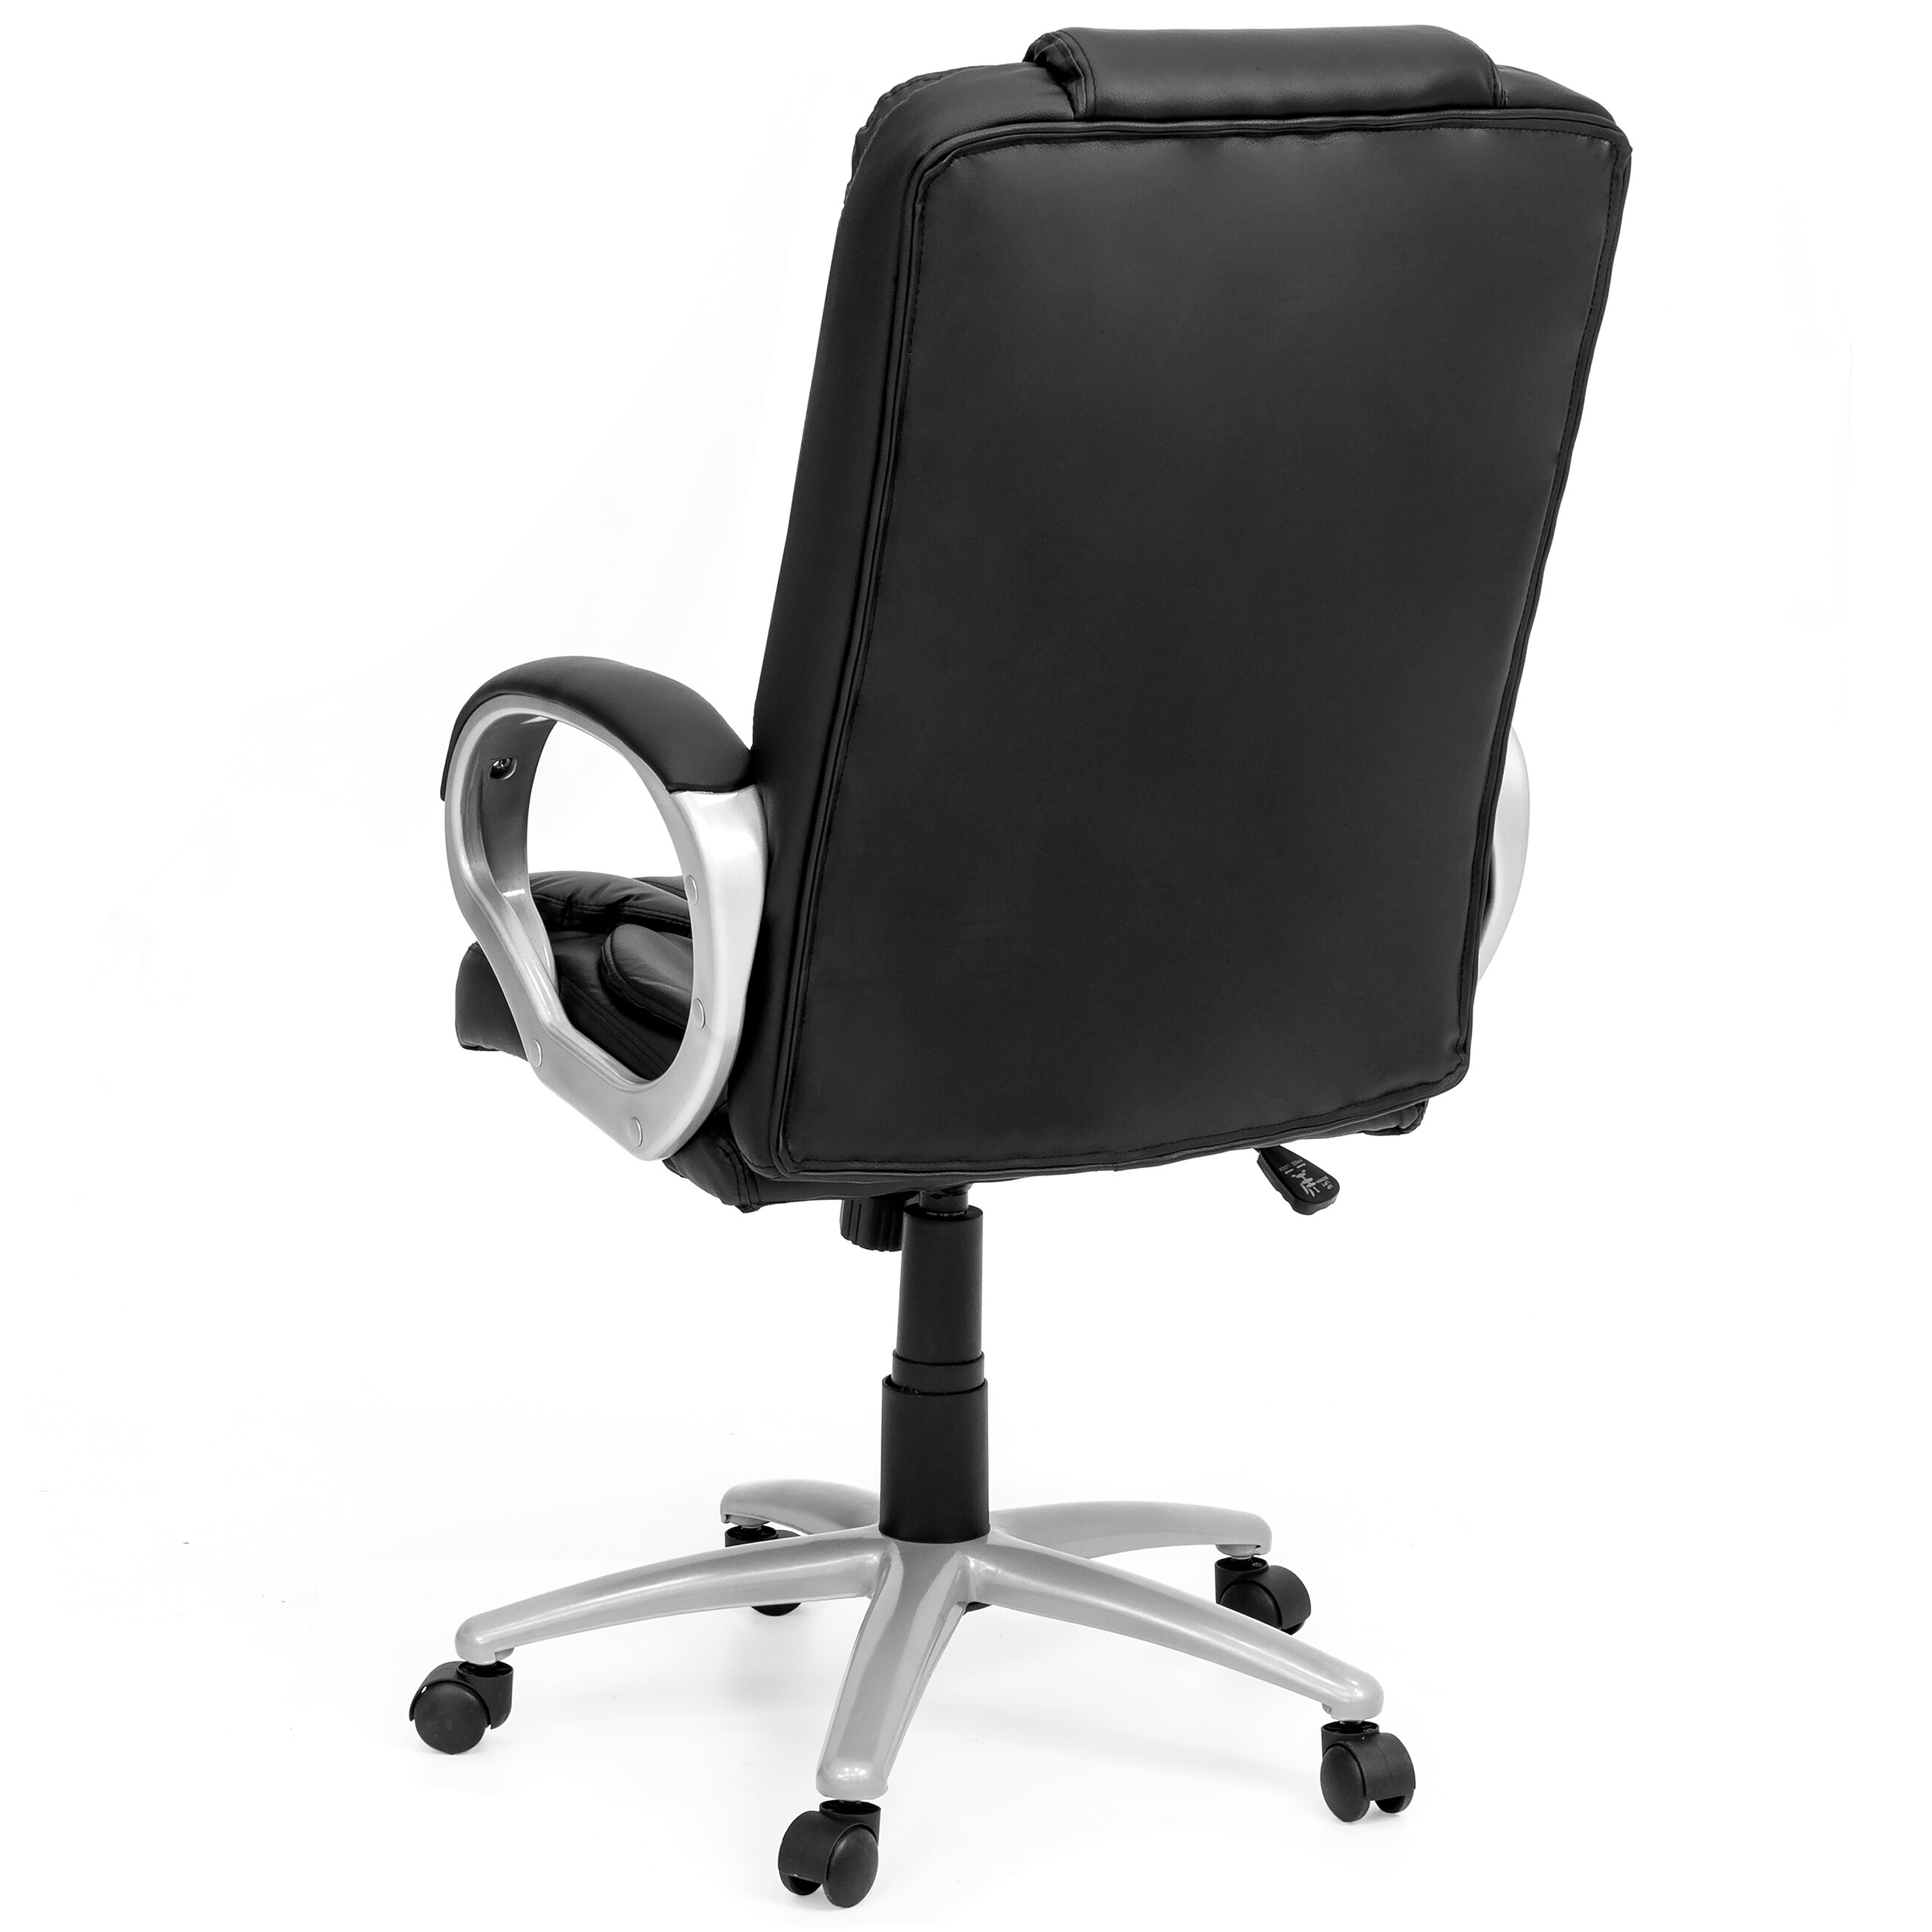 Best Choice Products Ergonomic PU Leather High Back Office Chair, Black 3